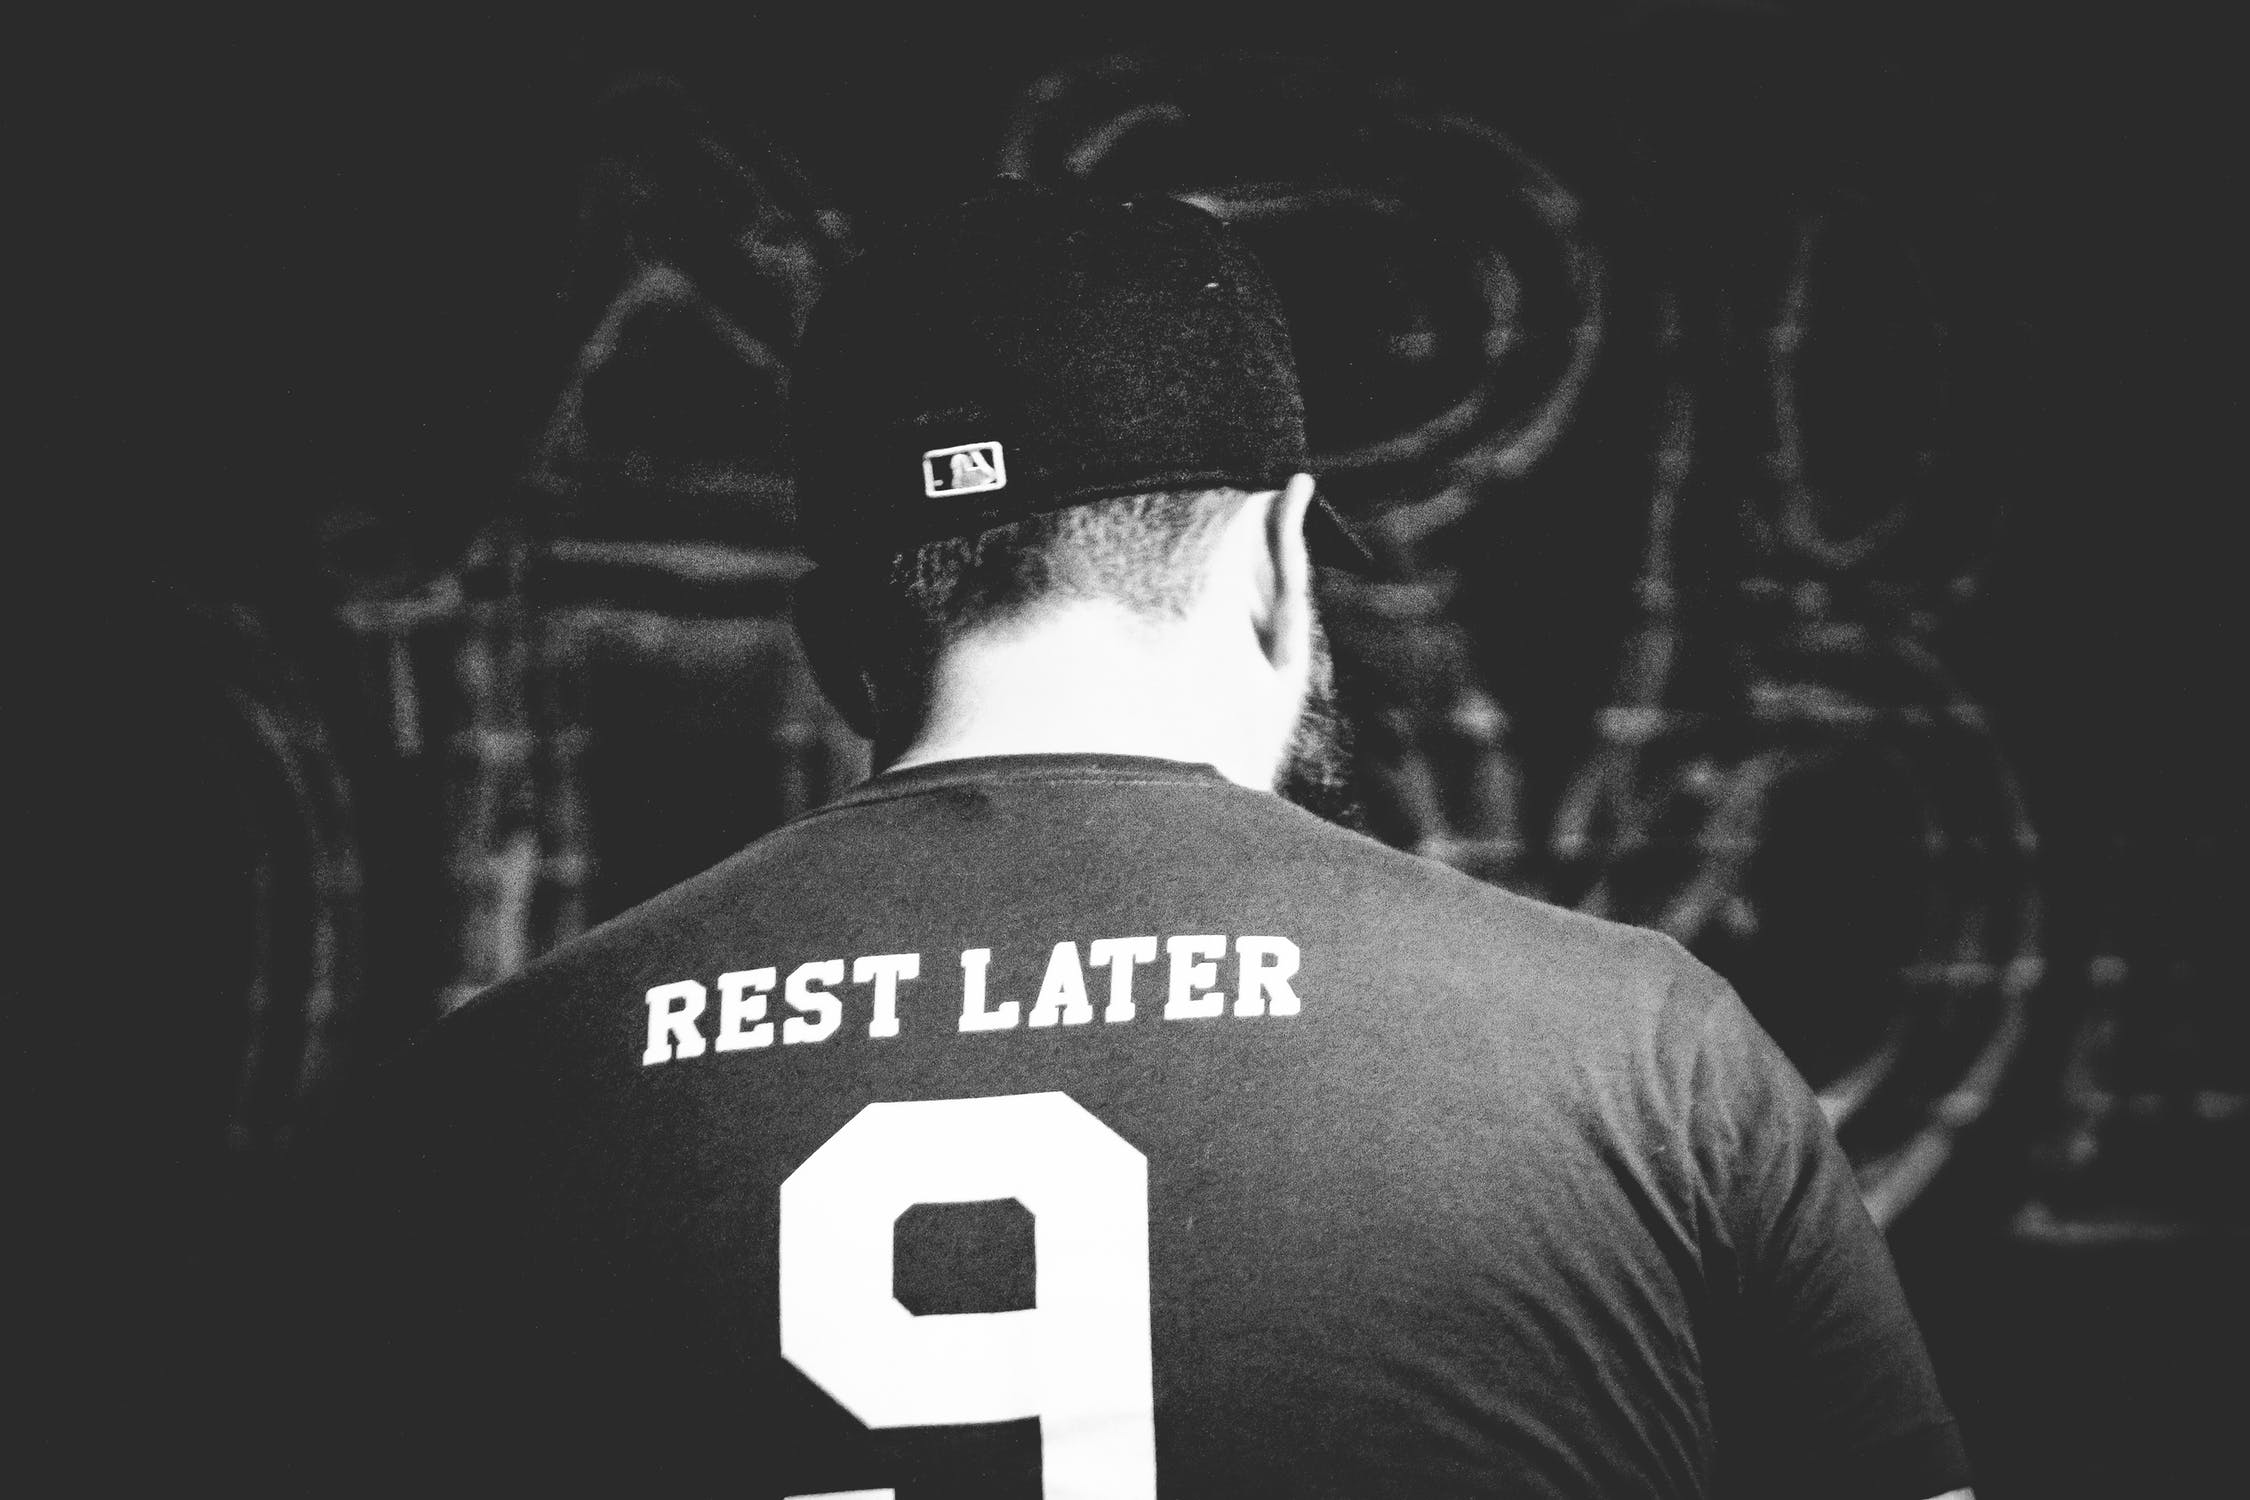 rest later 1 - The Healthy Effects of Cannabis on Bodybuilders and Fitness Enthusiasts